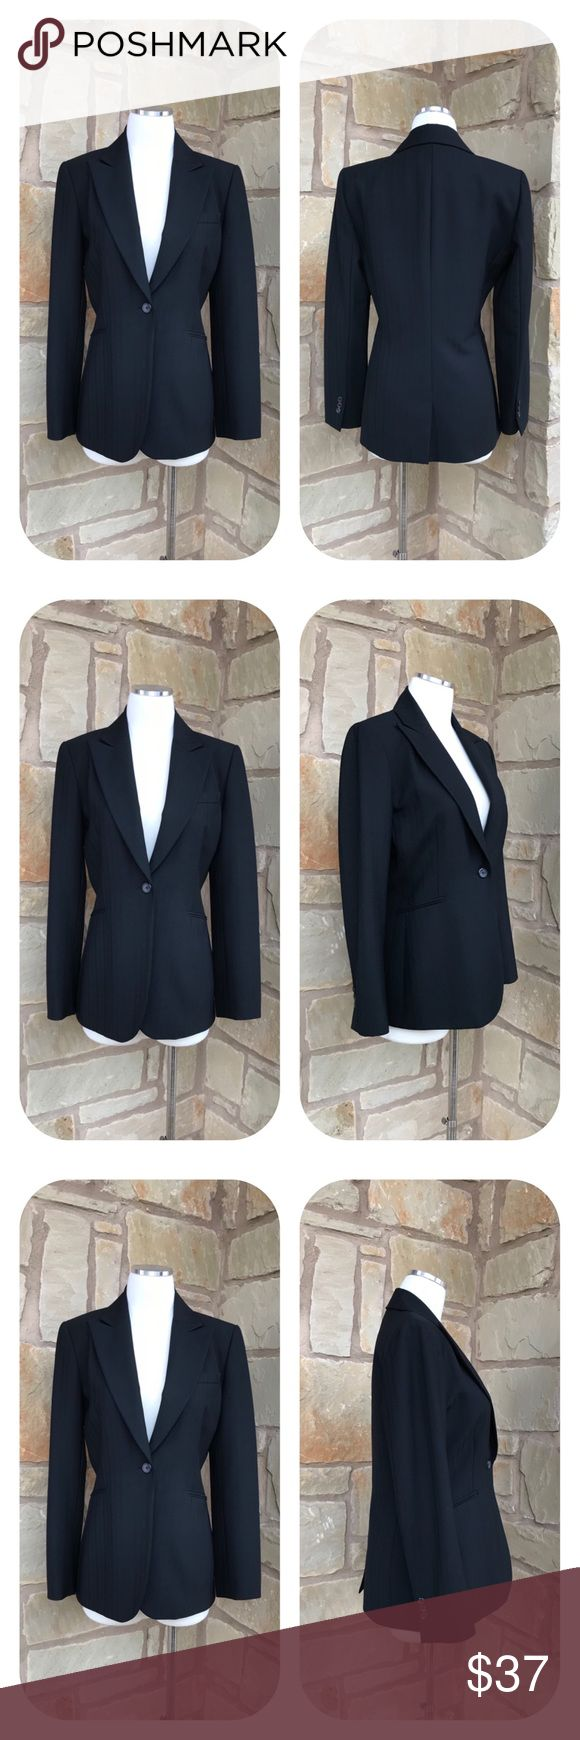 """Tahari Classic Black One Button Wool Blazer Size 6 Tahari Classic Black One Button Blazer  Size 6  -  One Button Closure  -  Three Mock Pockets  -  Fully Lined -  Textured Stripes -  98% Wool 2% Elastane  -  Size 6     Underarm to underarm 18.5""""     Underarm to end of sleeve 17""""     Shoulder to hem 27""""  Thanks for visiting! 🔥🔥🔥 Tahari Jackets & Coats Blazers"""